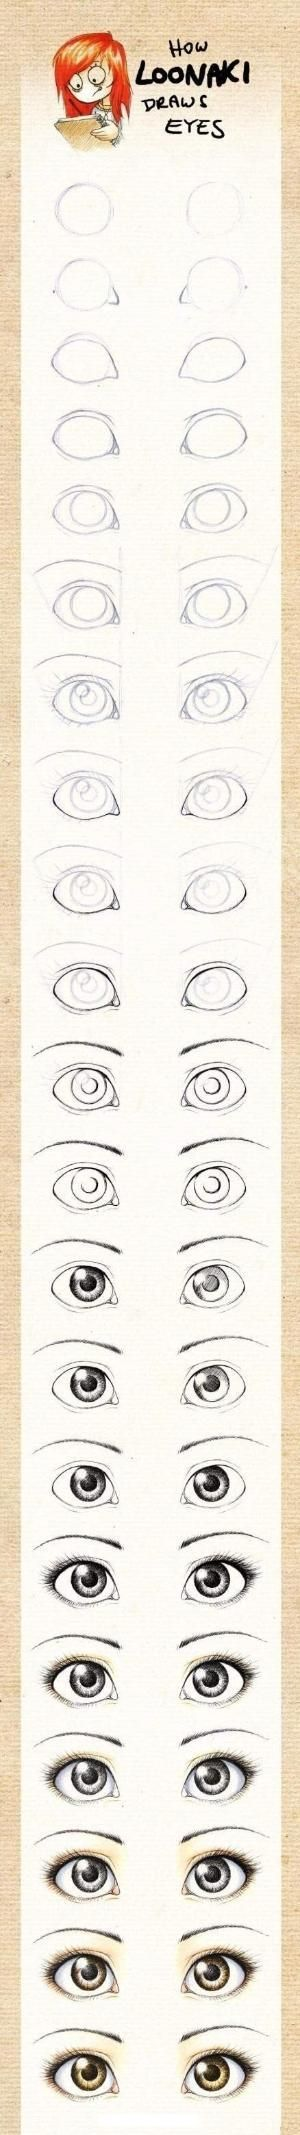 How to draw eyes by JadeMonroe